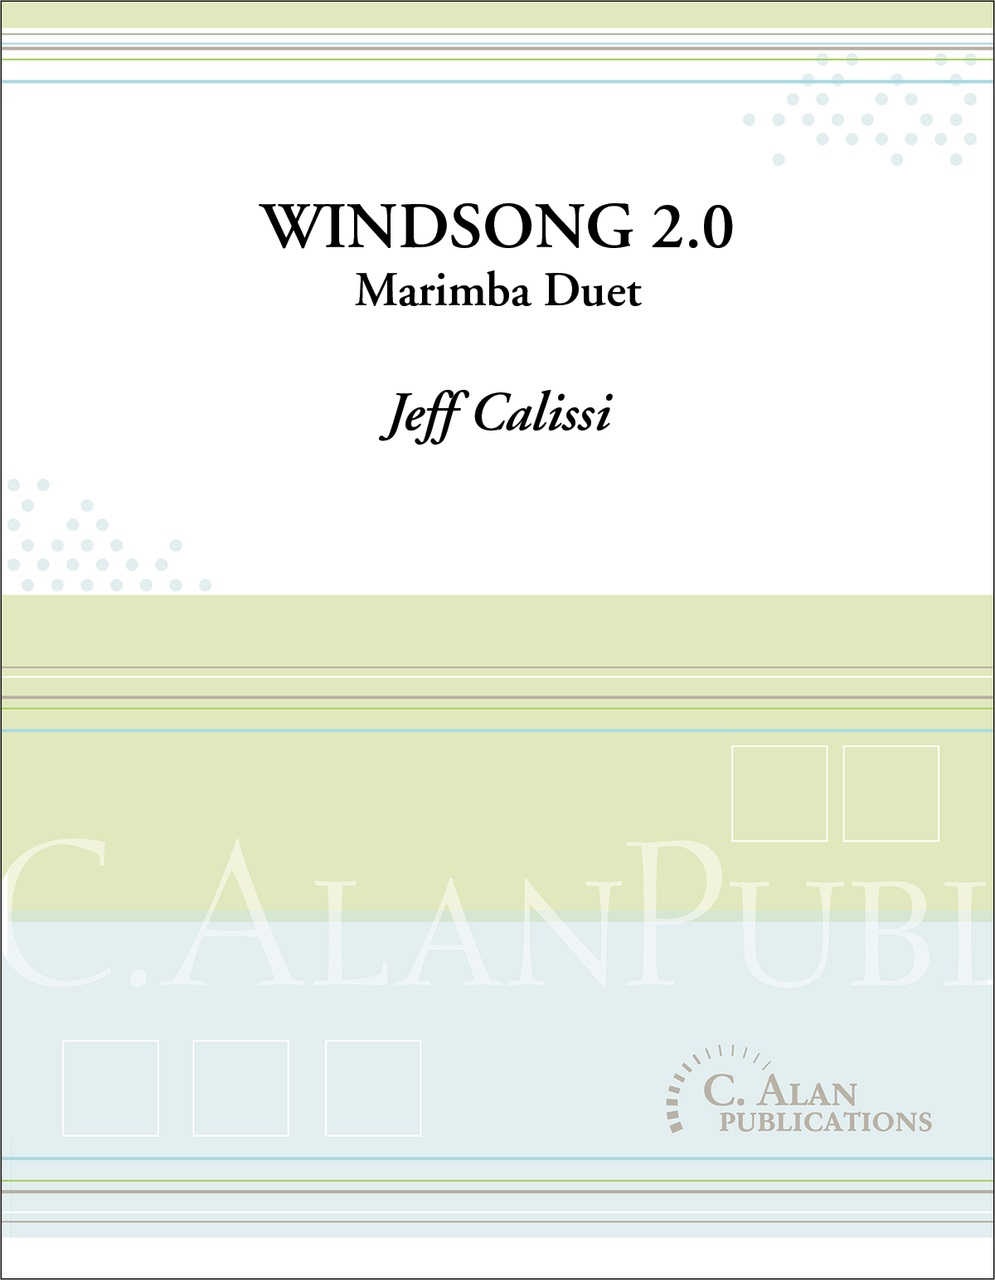 Windsong 2.0